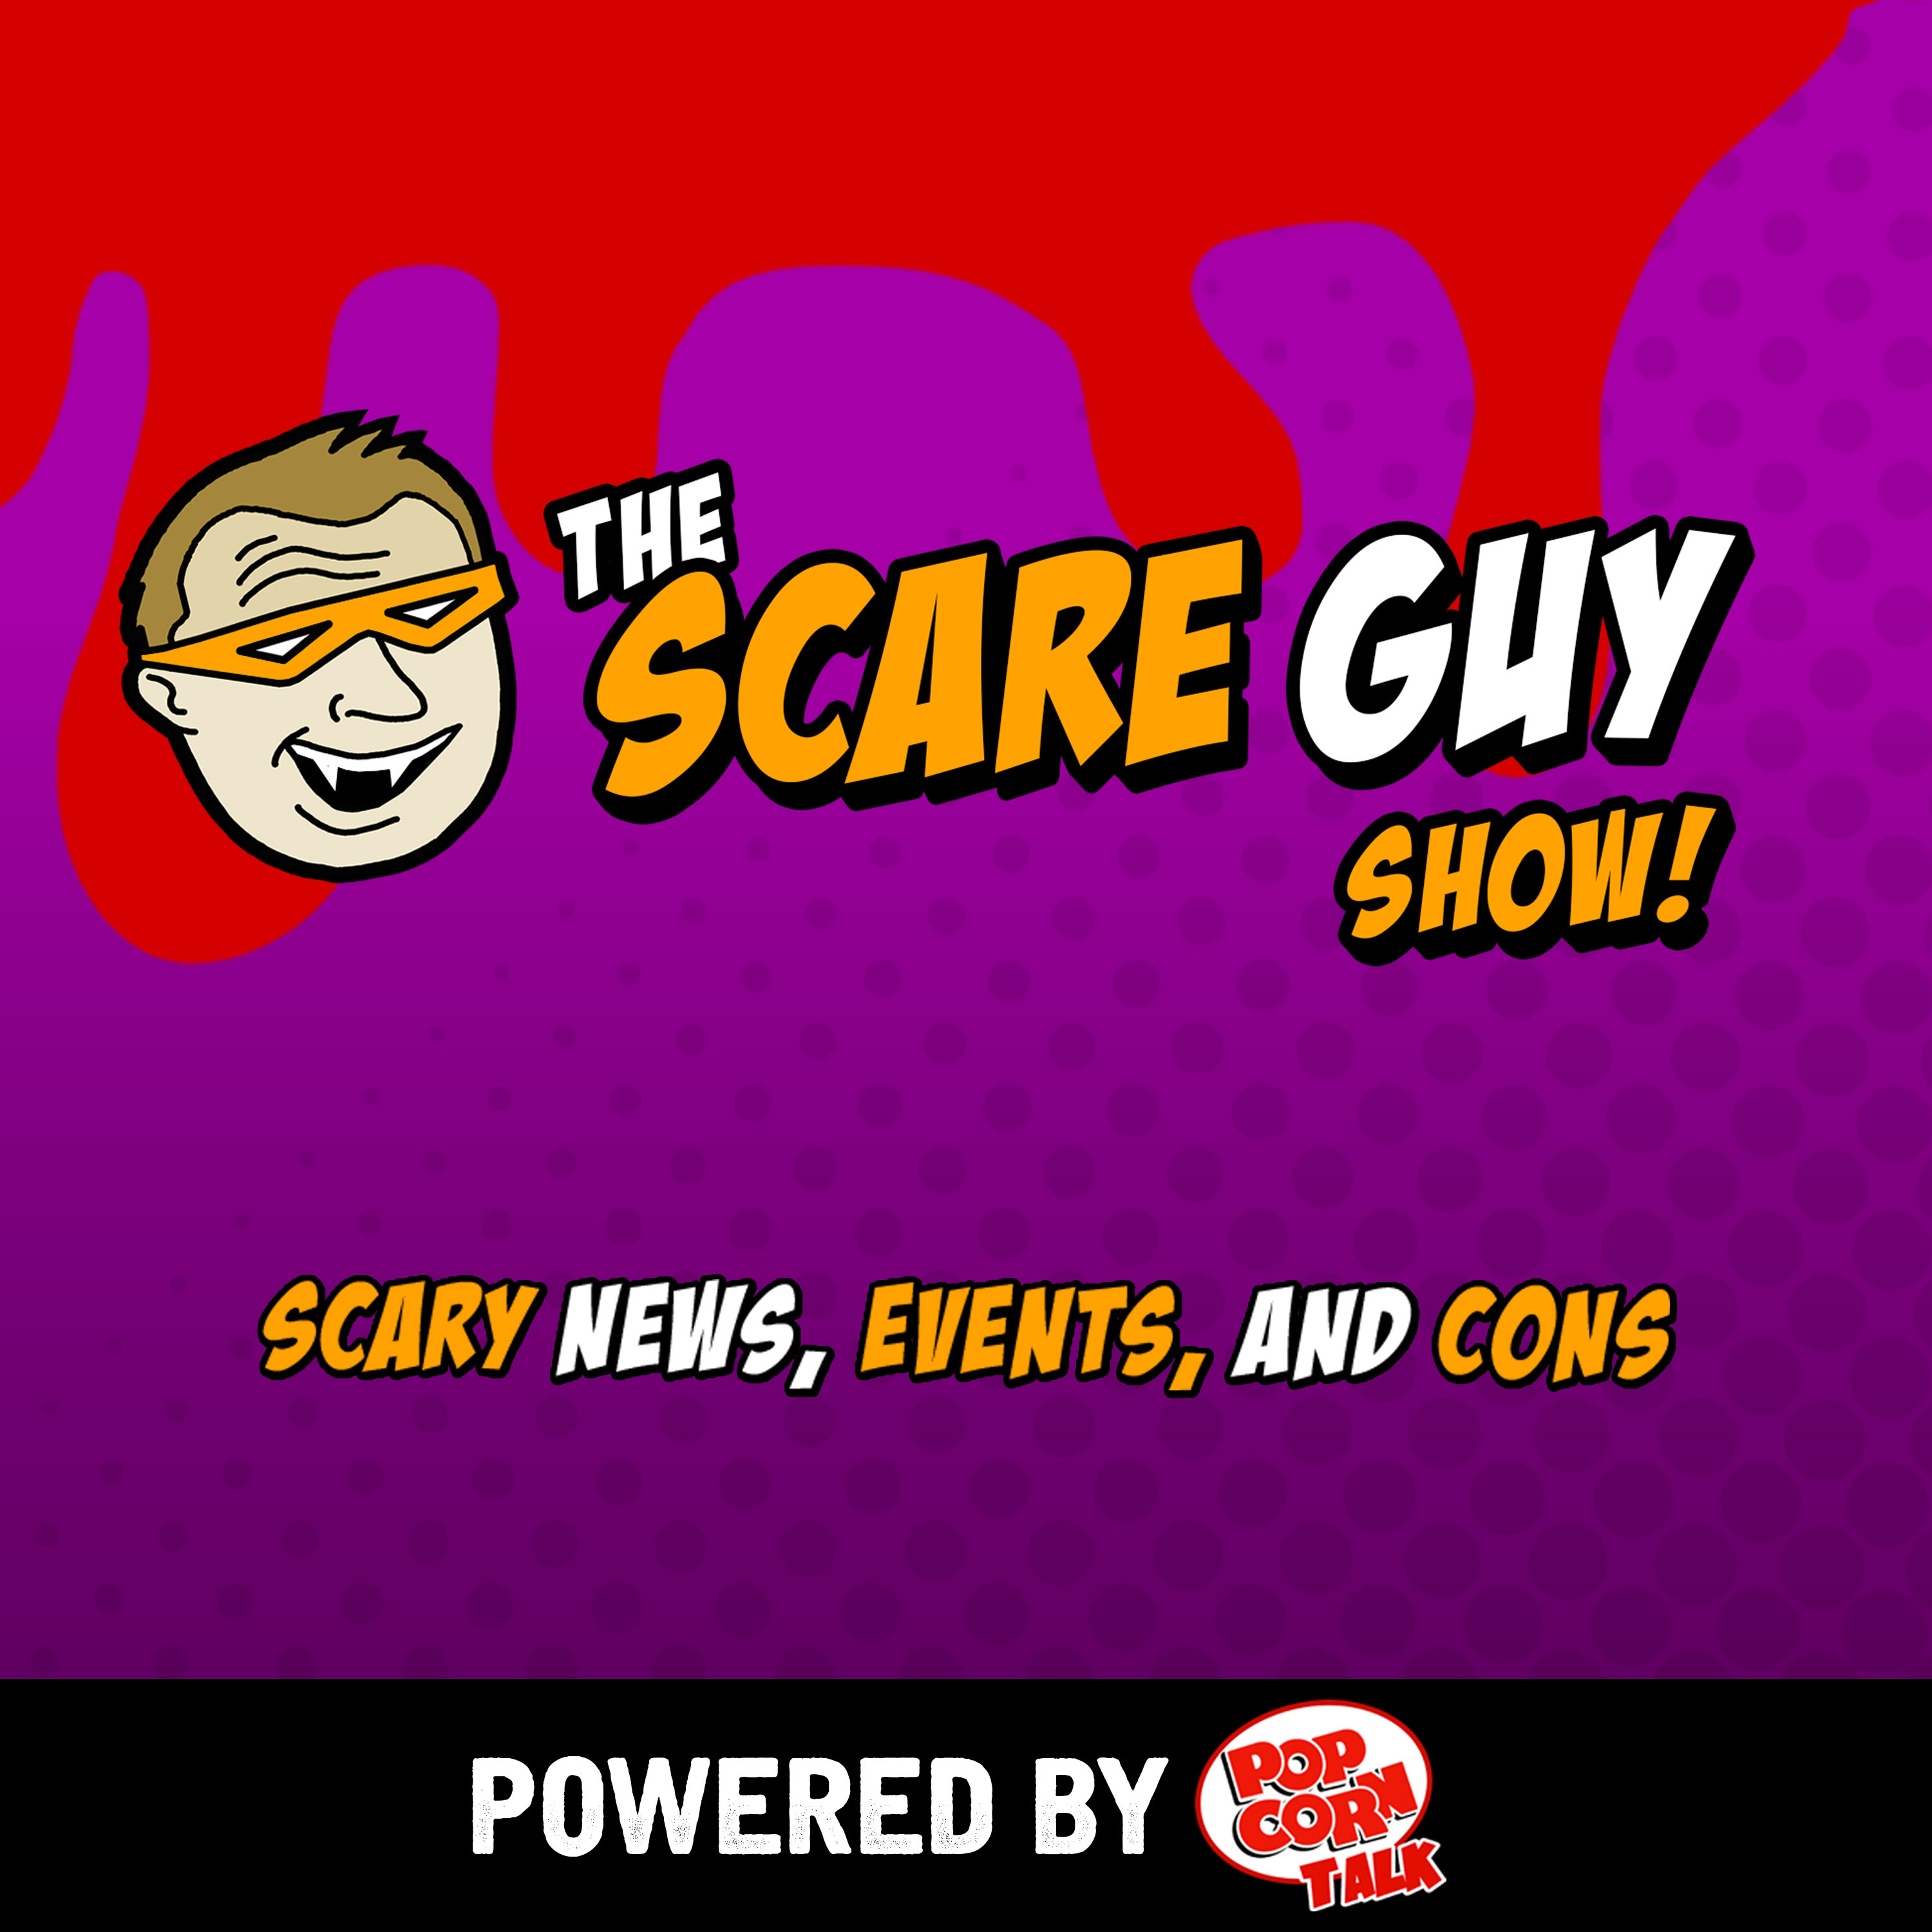 The ScareGuys Horror Show